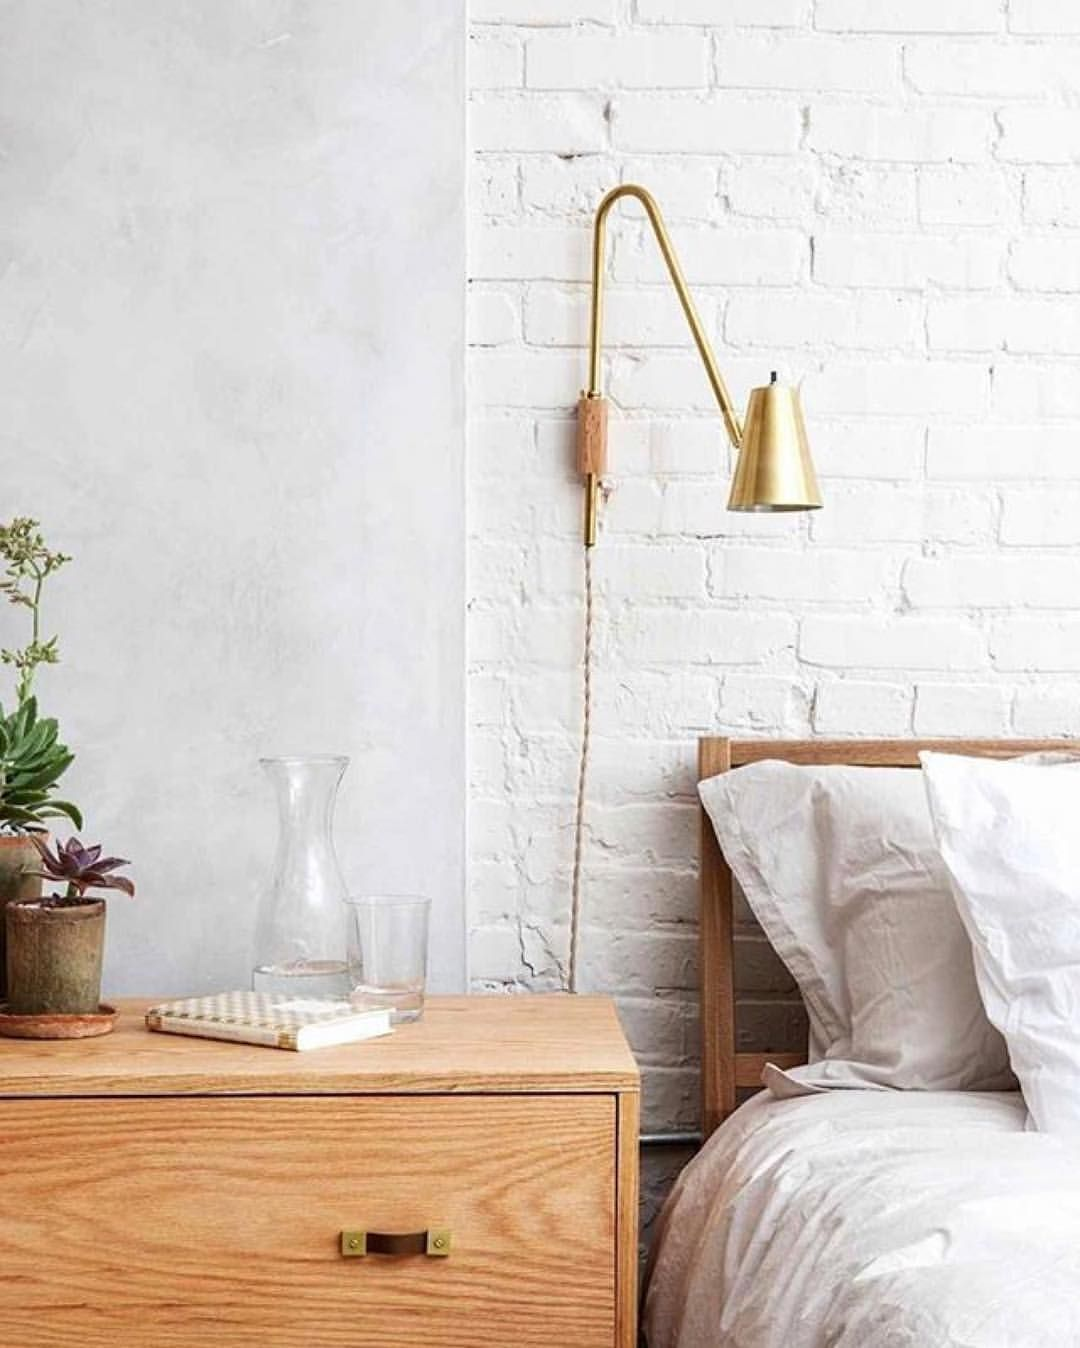 Fantastic 2 Light Wall Lamp Wall Sconces Bedroom Rustic Brick Download Free Architecture Designs Scobabritishbridgeorg